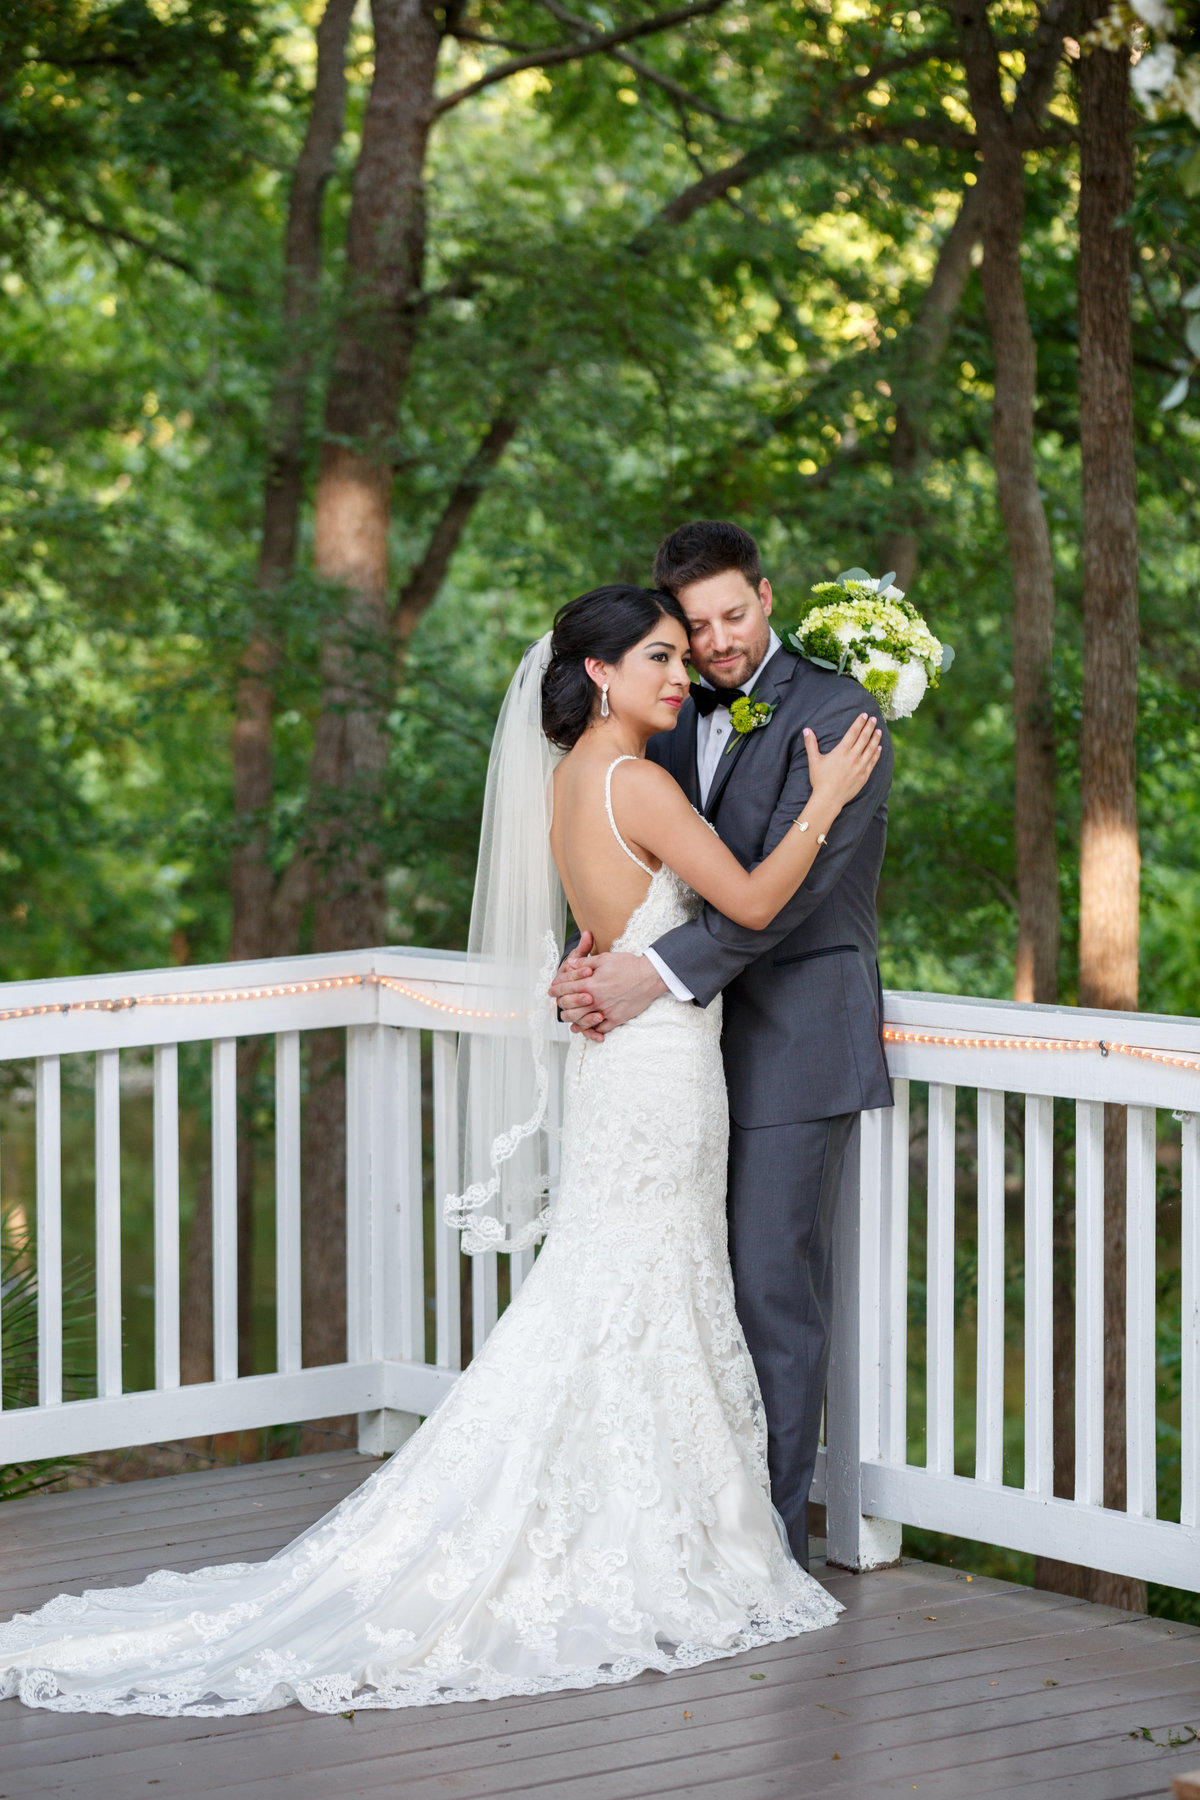 Austin wedding photographer casa blanca on brushy creek bride groom full length